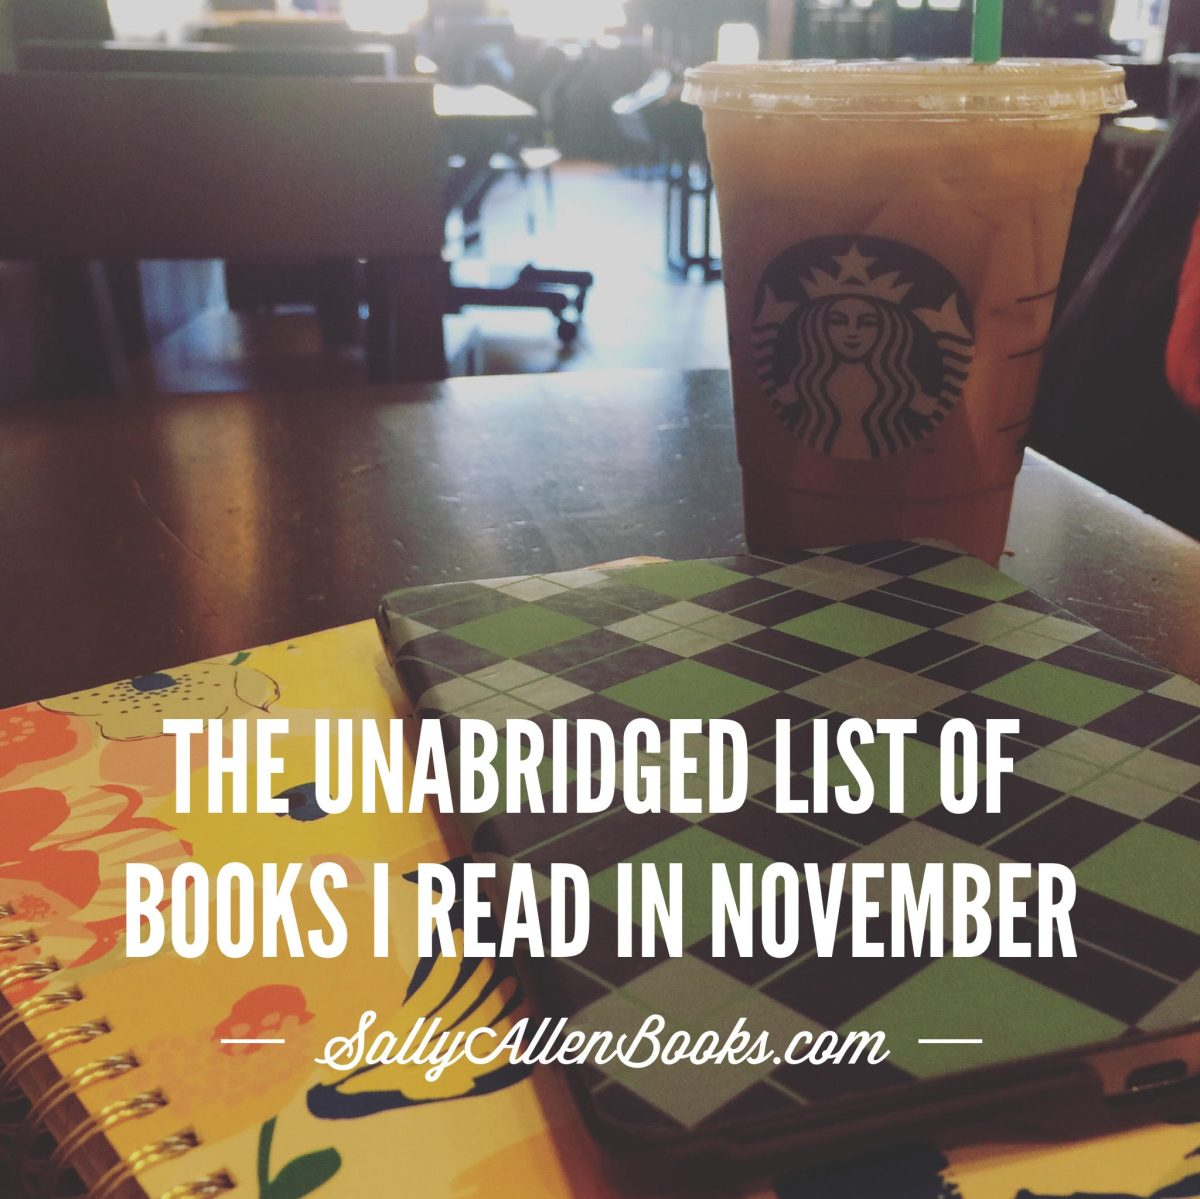 The unabridged list of books I read in November